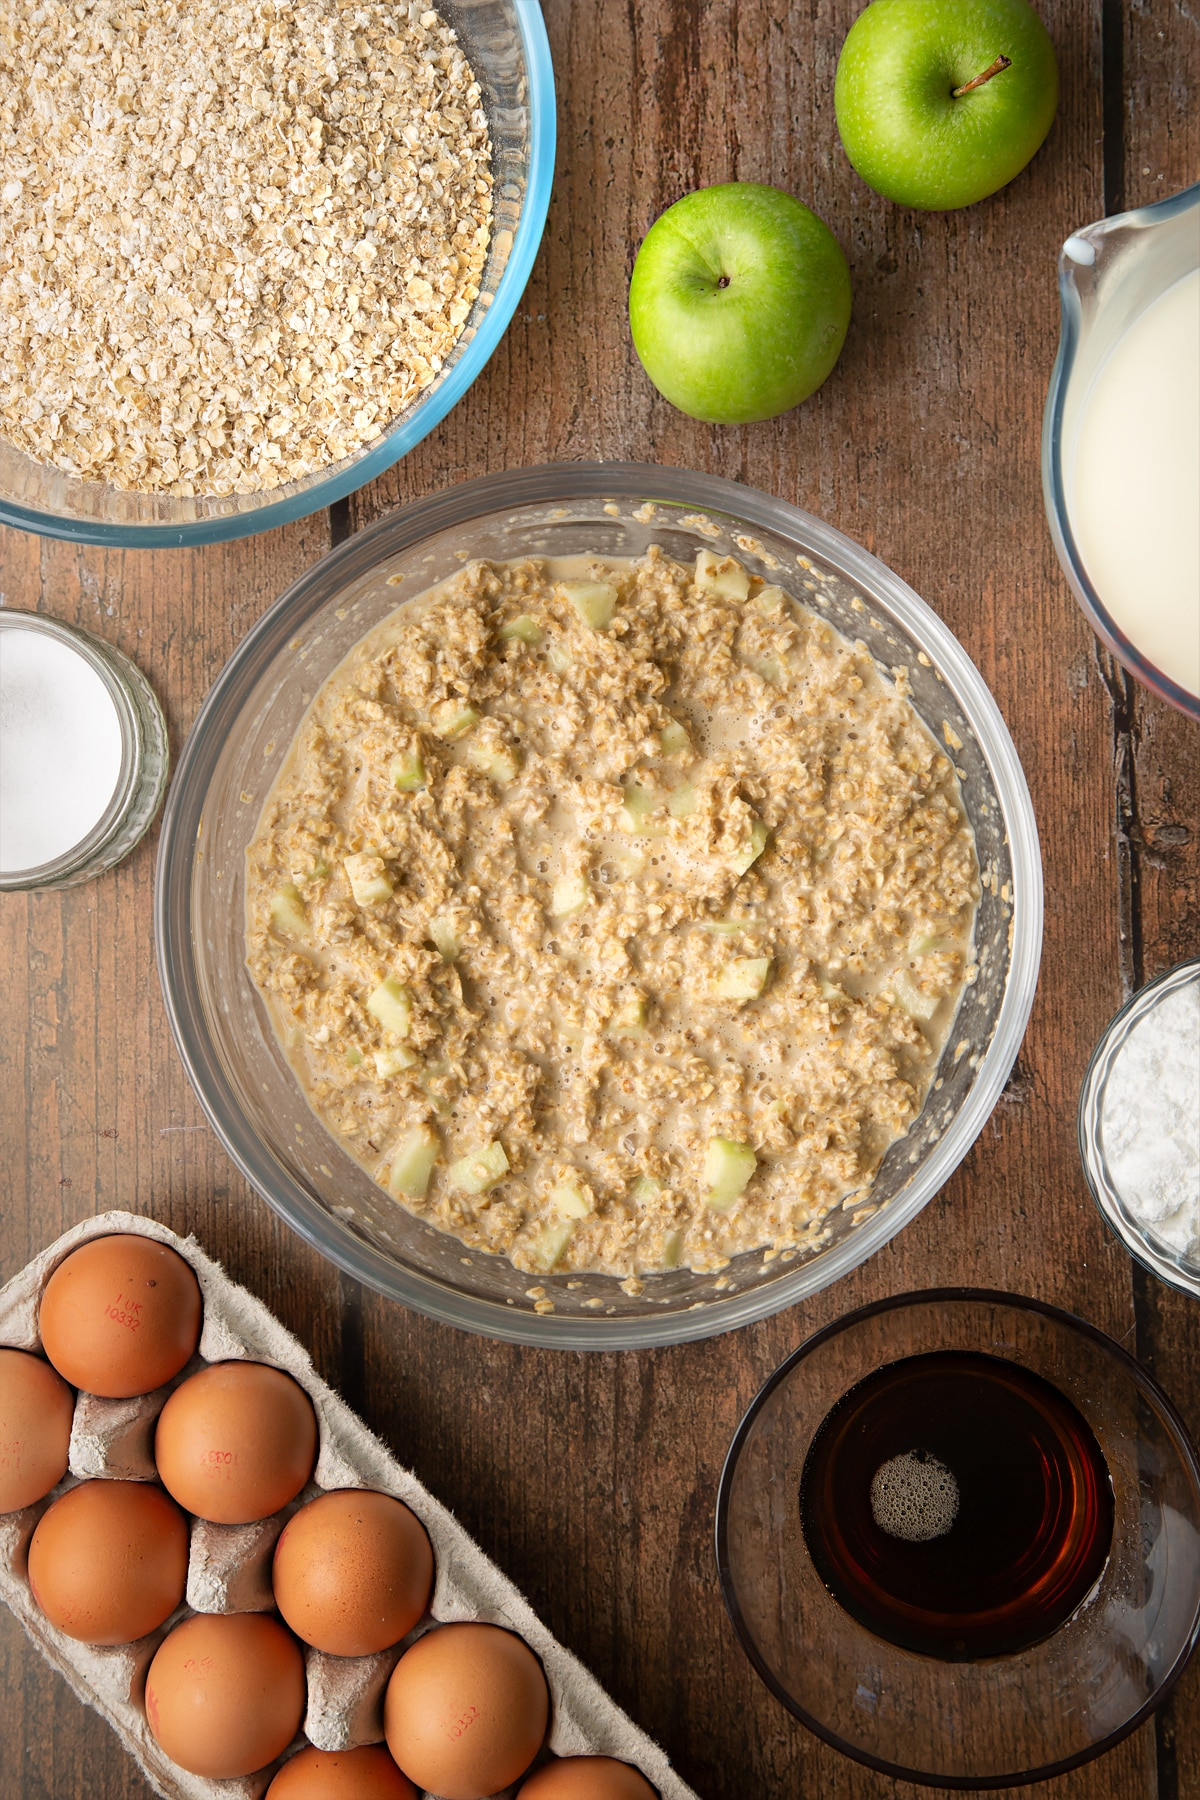 Oats, baking powder, salt, milk, eggs, maple syrup and apple mixed in a glass mixing bowl. Ingredients to make porridge squares surround the bowl.